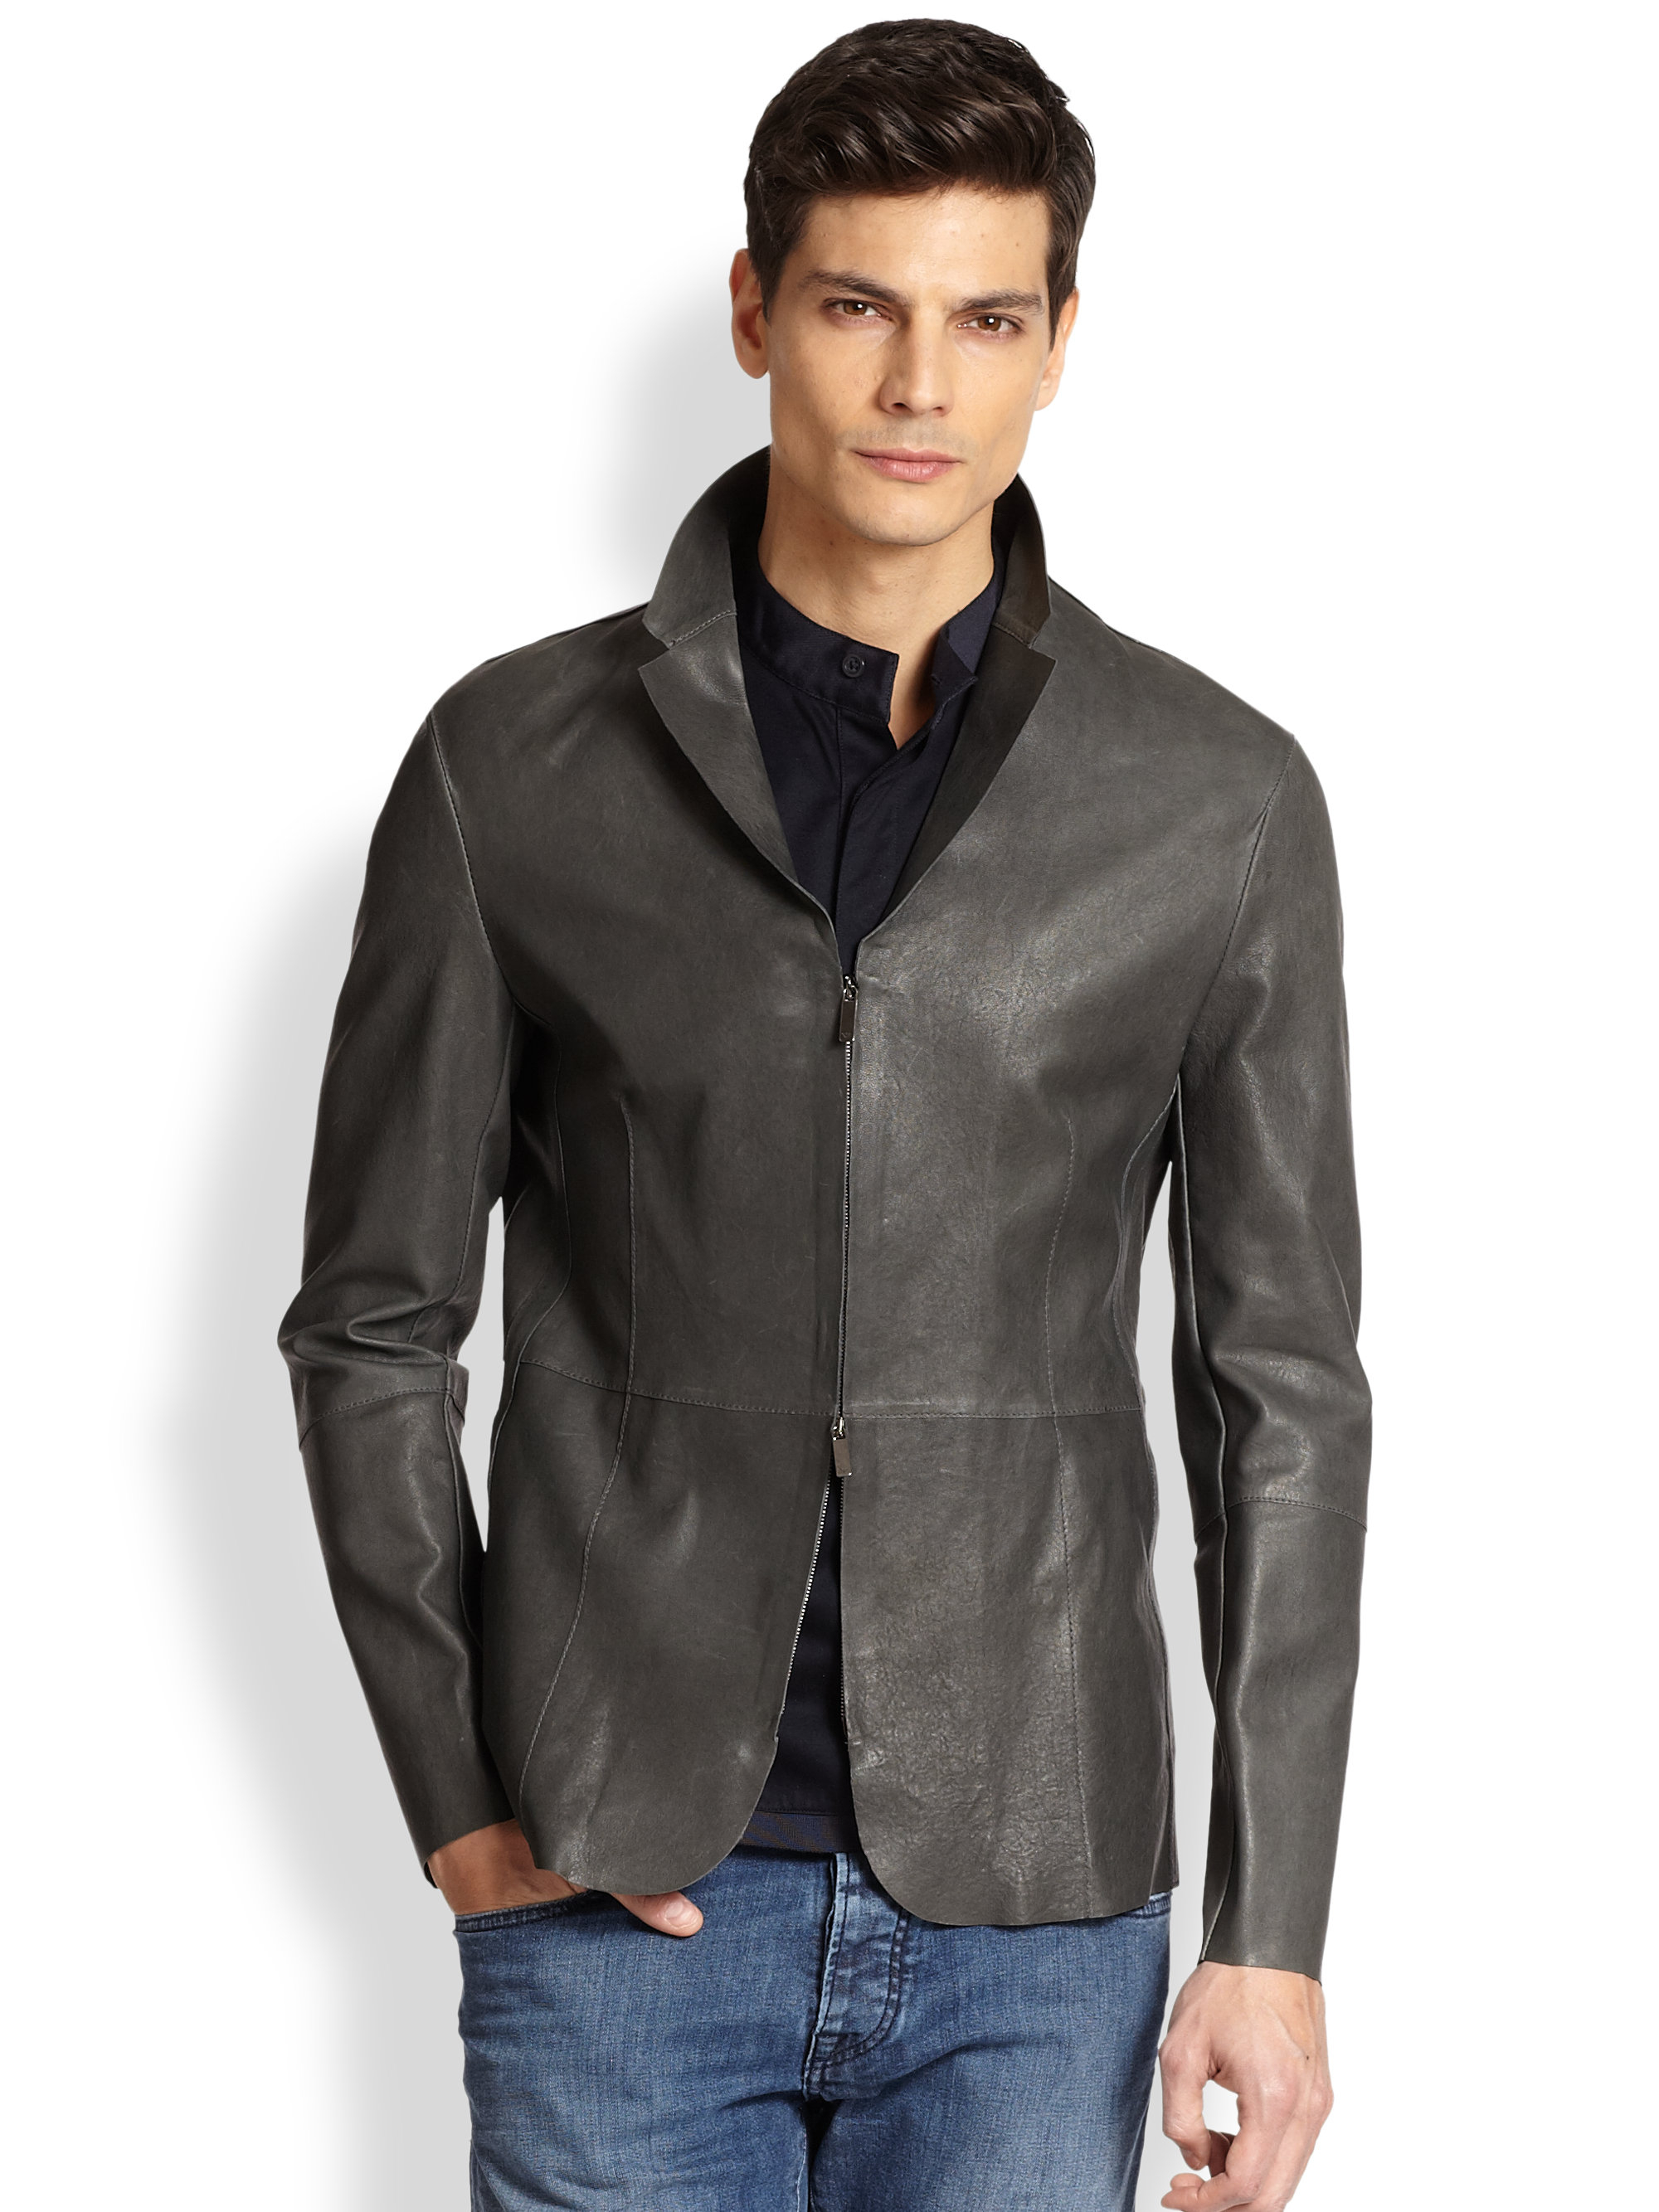 4911dfe5c127a5 Lyst - Emporio Armani Leather Blazer in Gray for Men